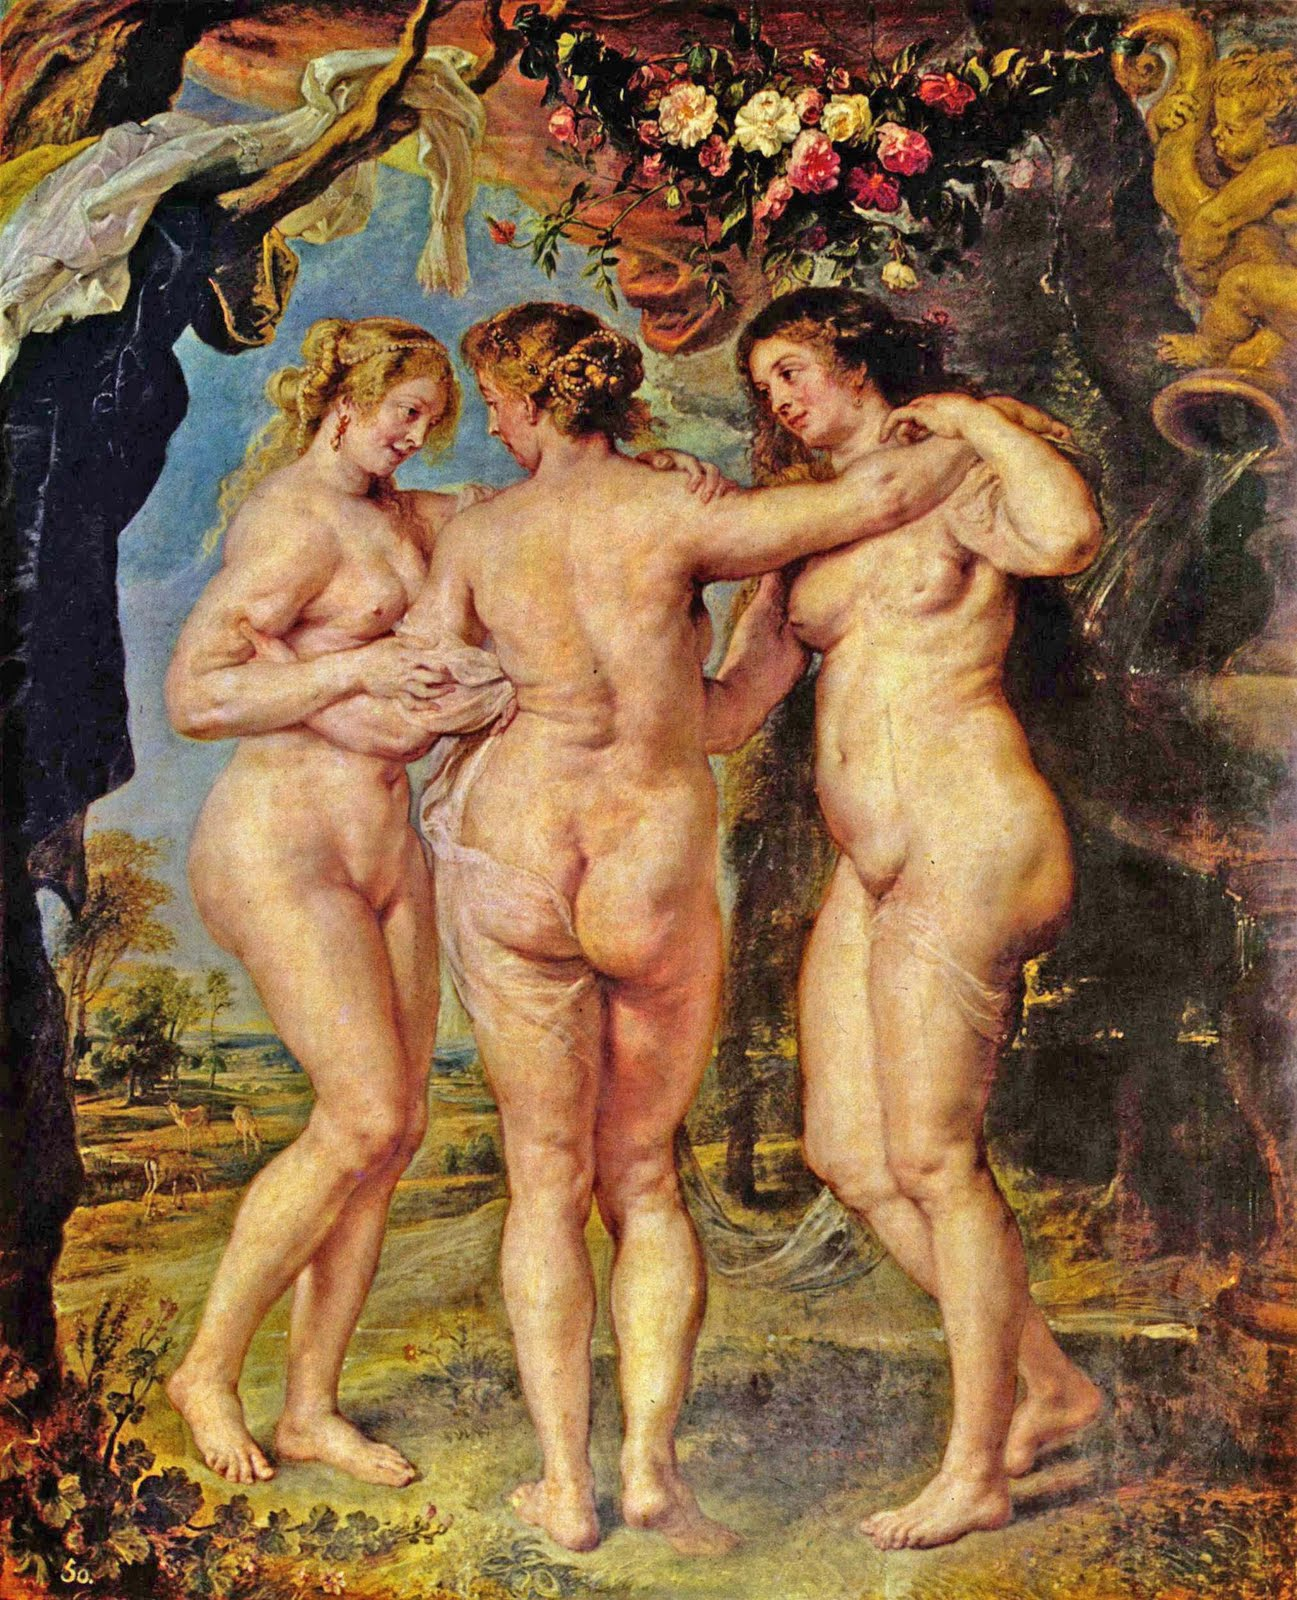 http://3.bp.blogspot.com/-hFnV_BFMyUM/TazXJD-owgI/AAAAAAAAAQU/4J8FbxTKooQ/s1600/The+Three+Graces.jpg